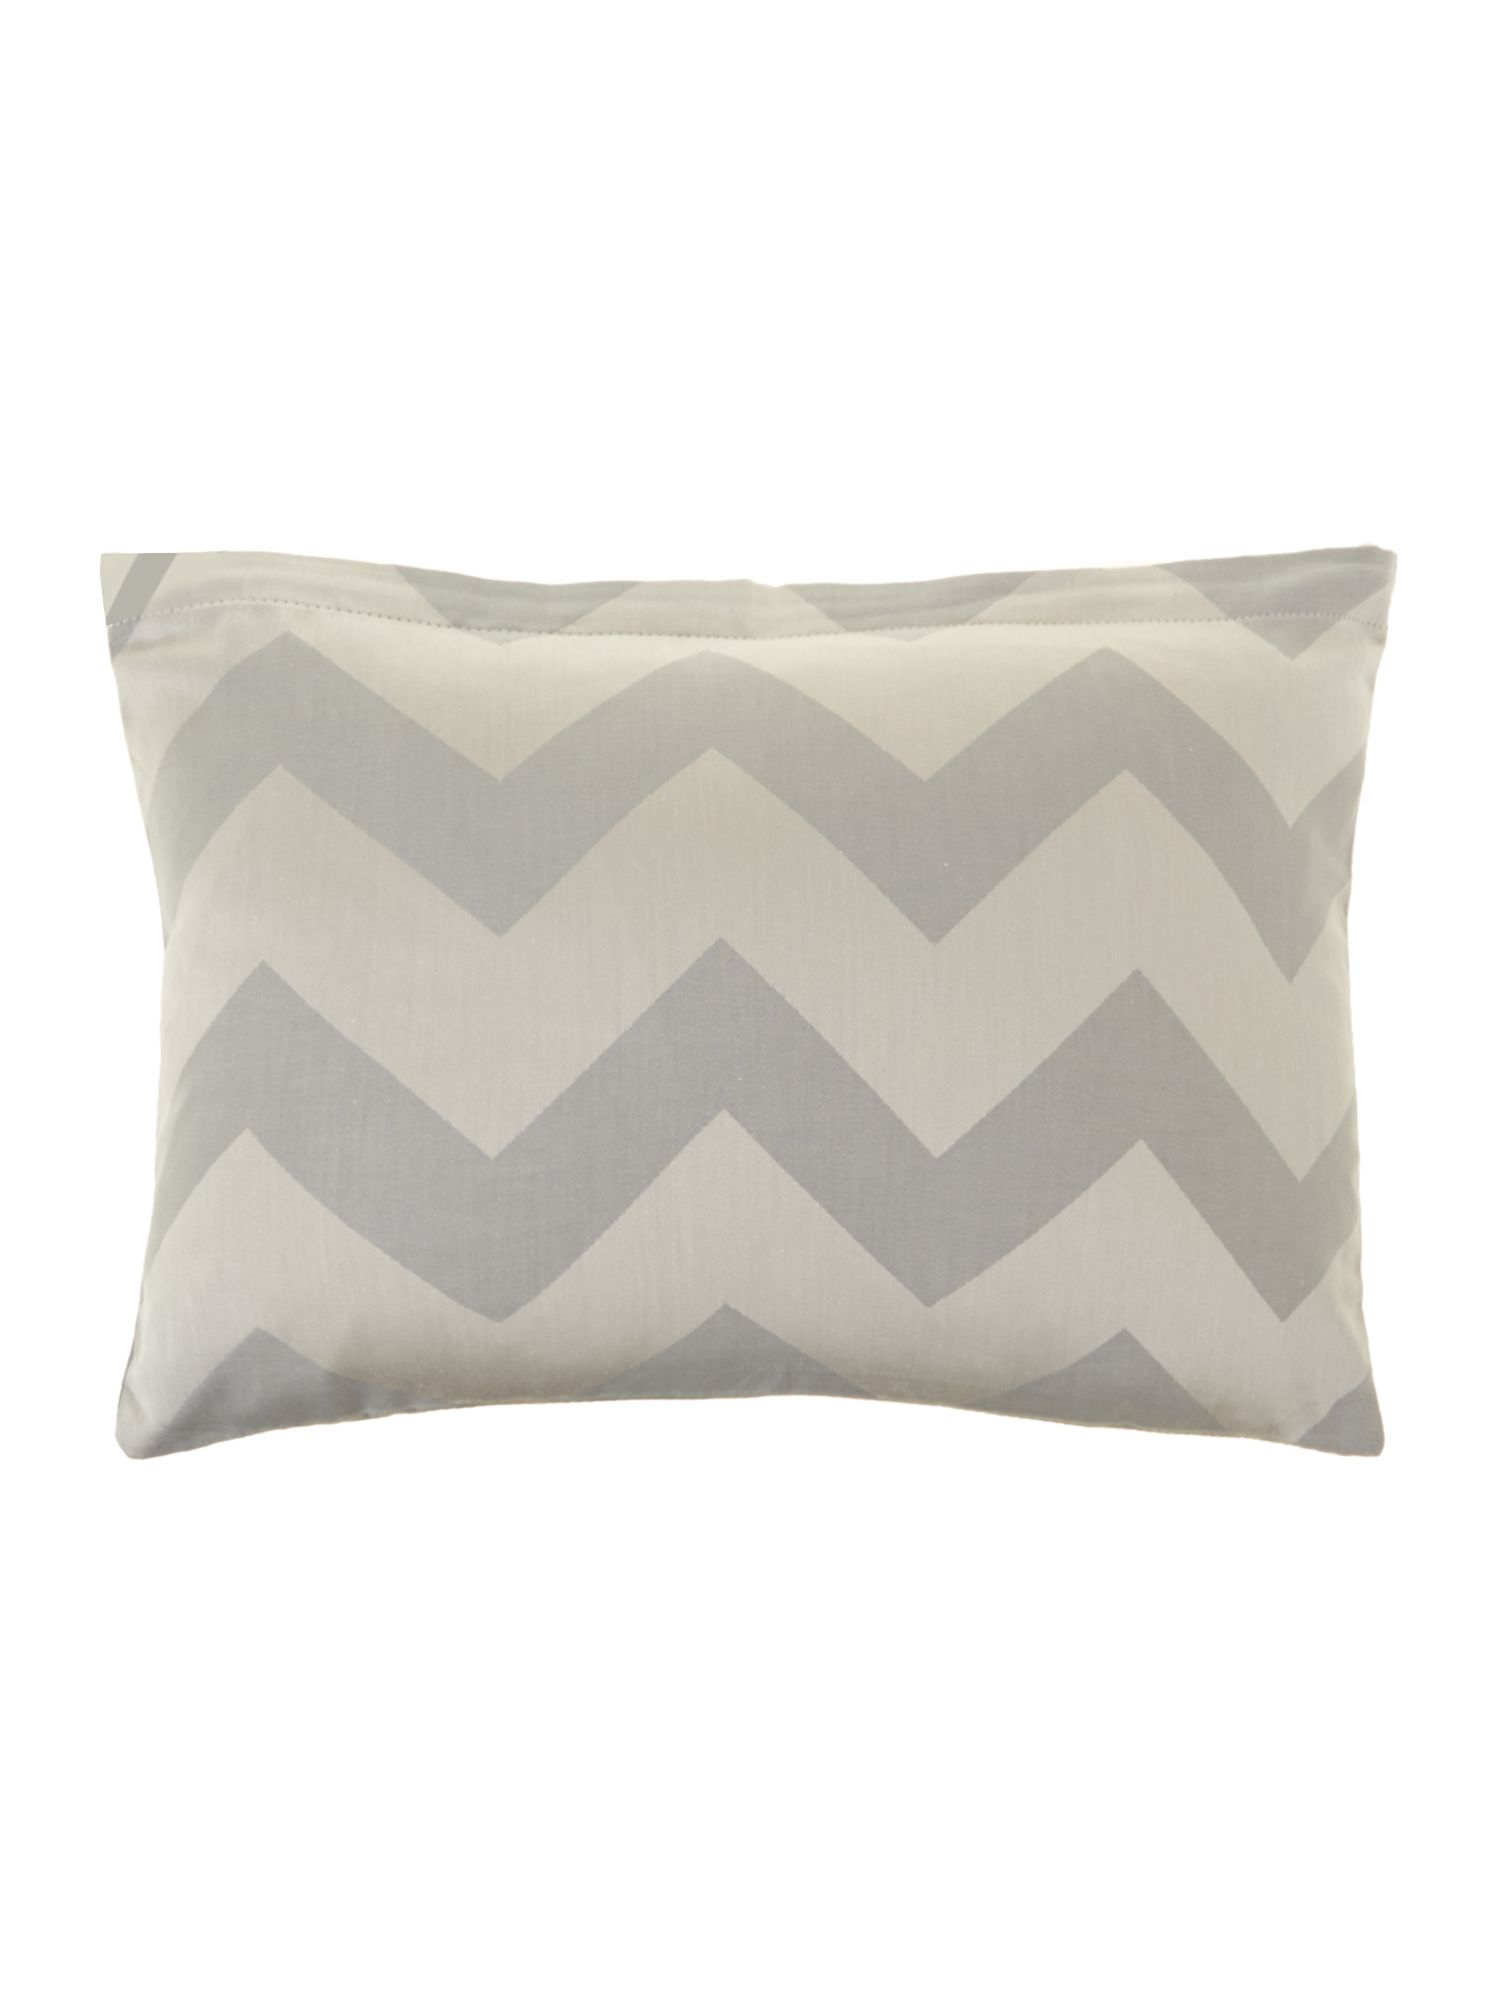 Slate chevron cushion